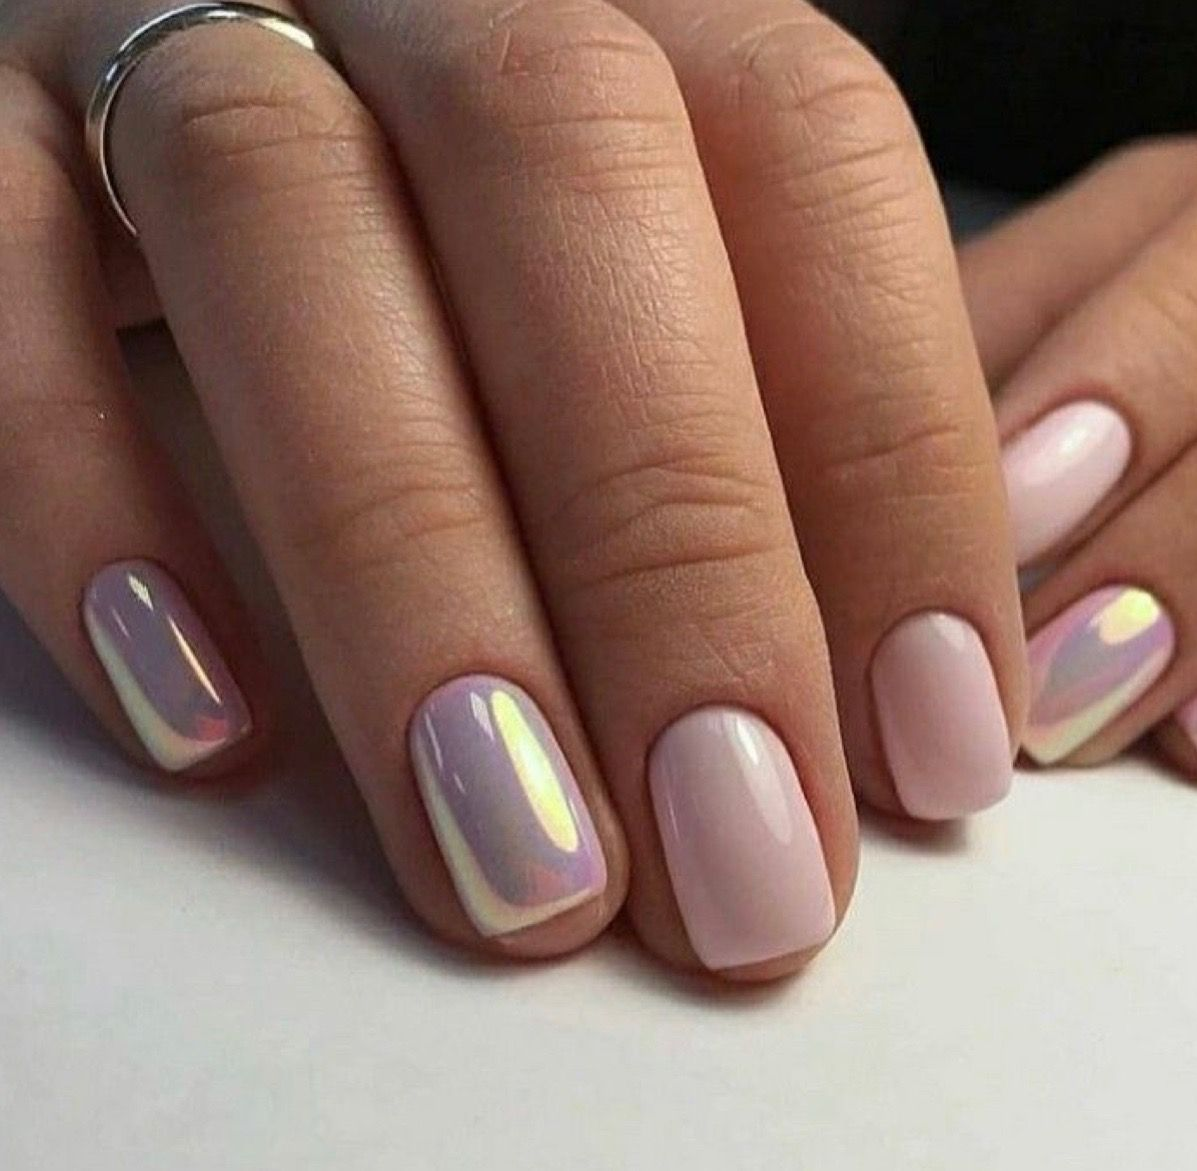 Short Square Soft Bubble Gum Pink Natural Nails With Two Rose Gold Chrome Accent Nails Gold Nail Designs Rose Gold Nails Design Pink Nails